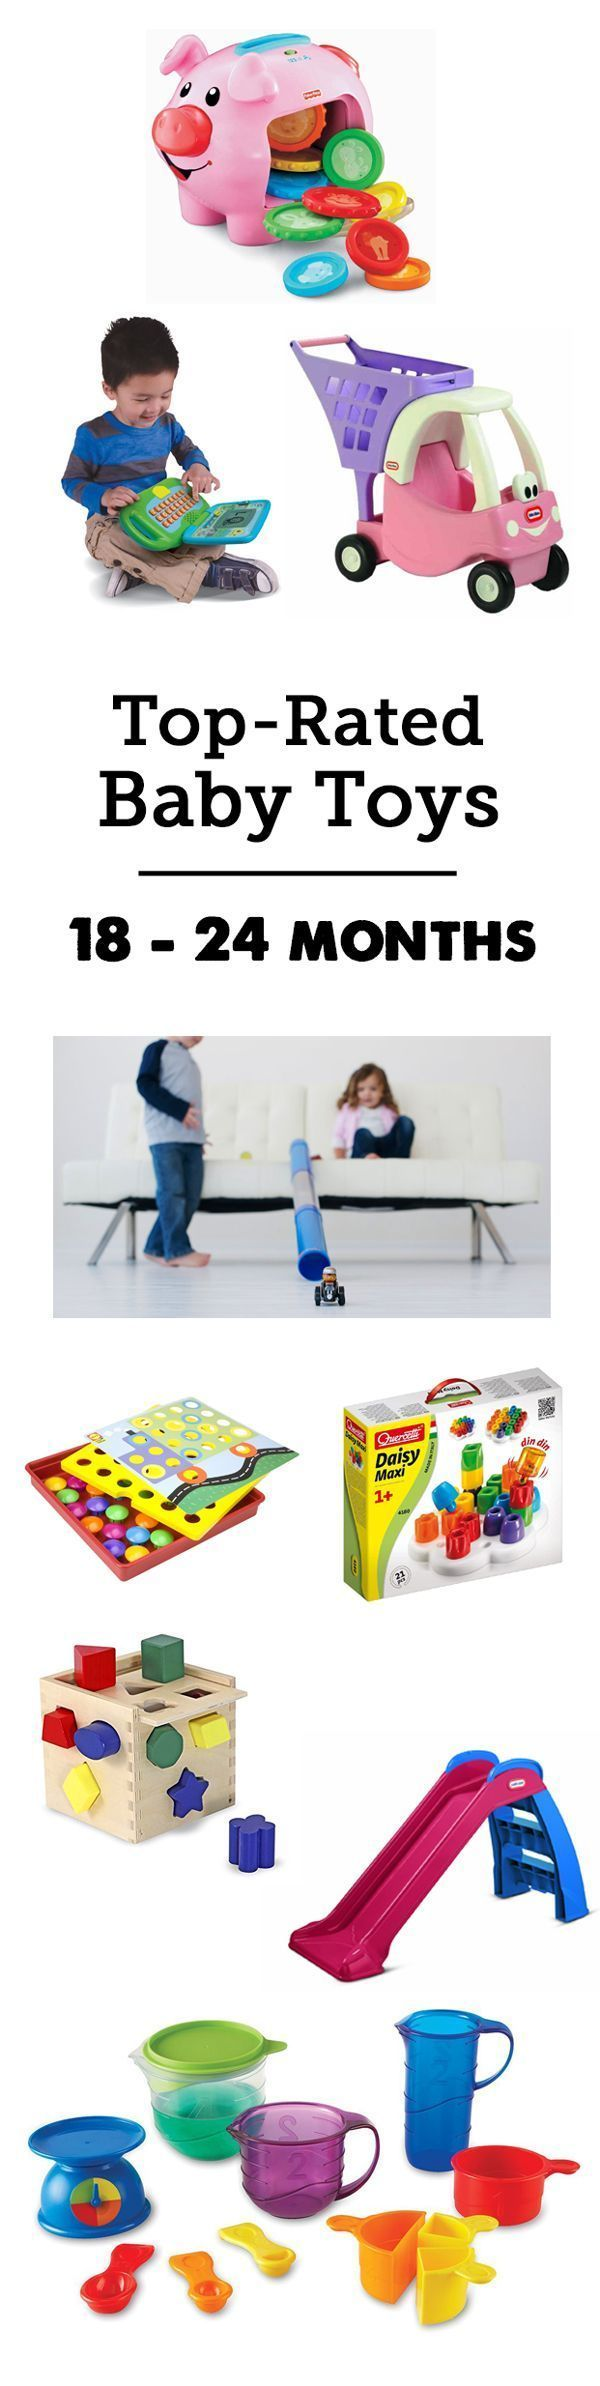 The 25 best 18 month activities ideas on pinterest 18 months mpmk toy gift guide best toys for babies best toys for young toddlers 12 months to 18 months part of a great list for that tricky 0 24 month negle Gallery